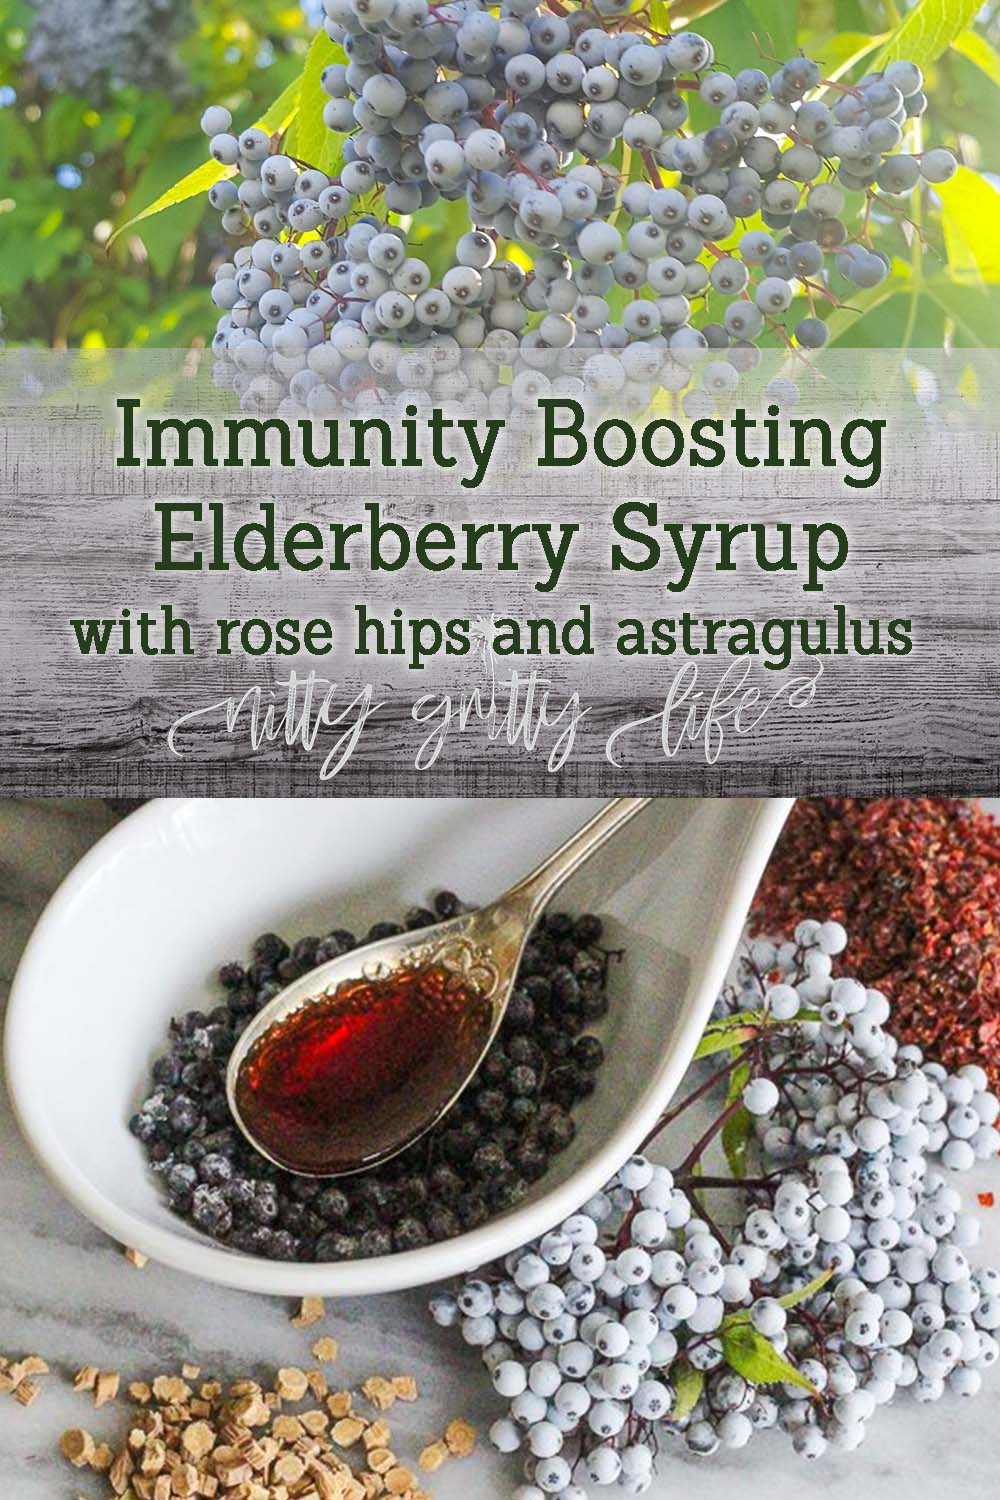 Elderberry Syrup with Rose Hips and Astragulus